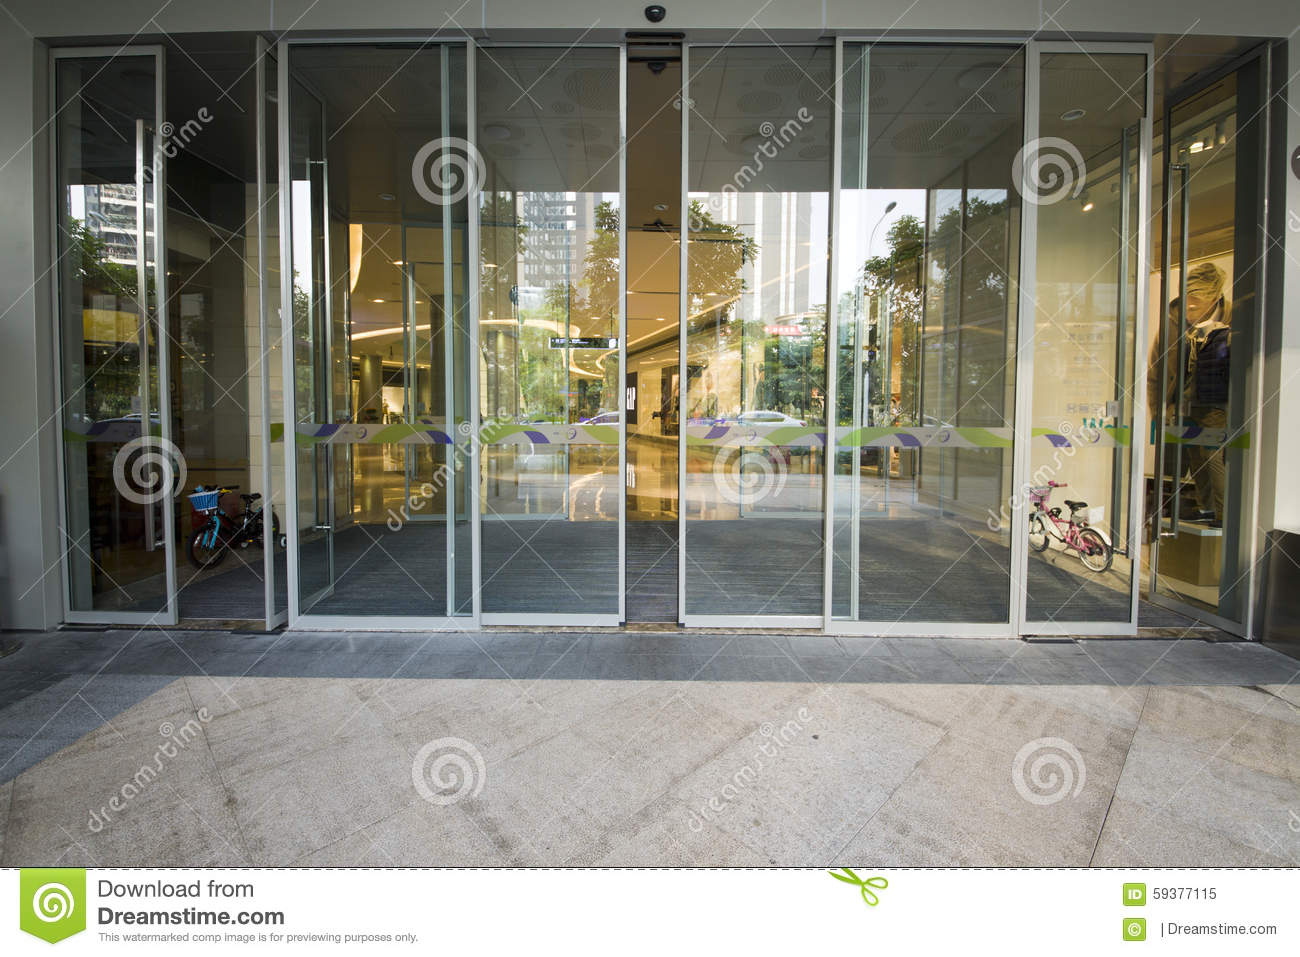 Shenzhen Commercial Mall Automatic Glass Doors Editorial